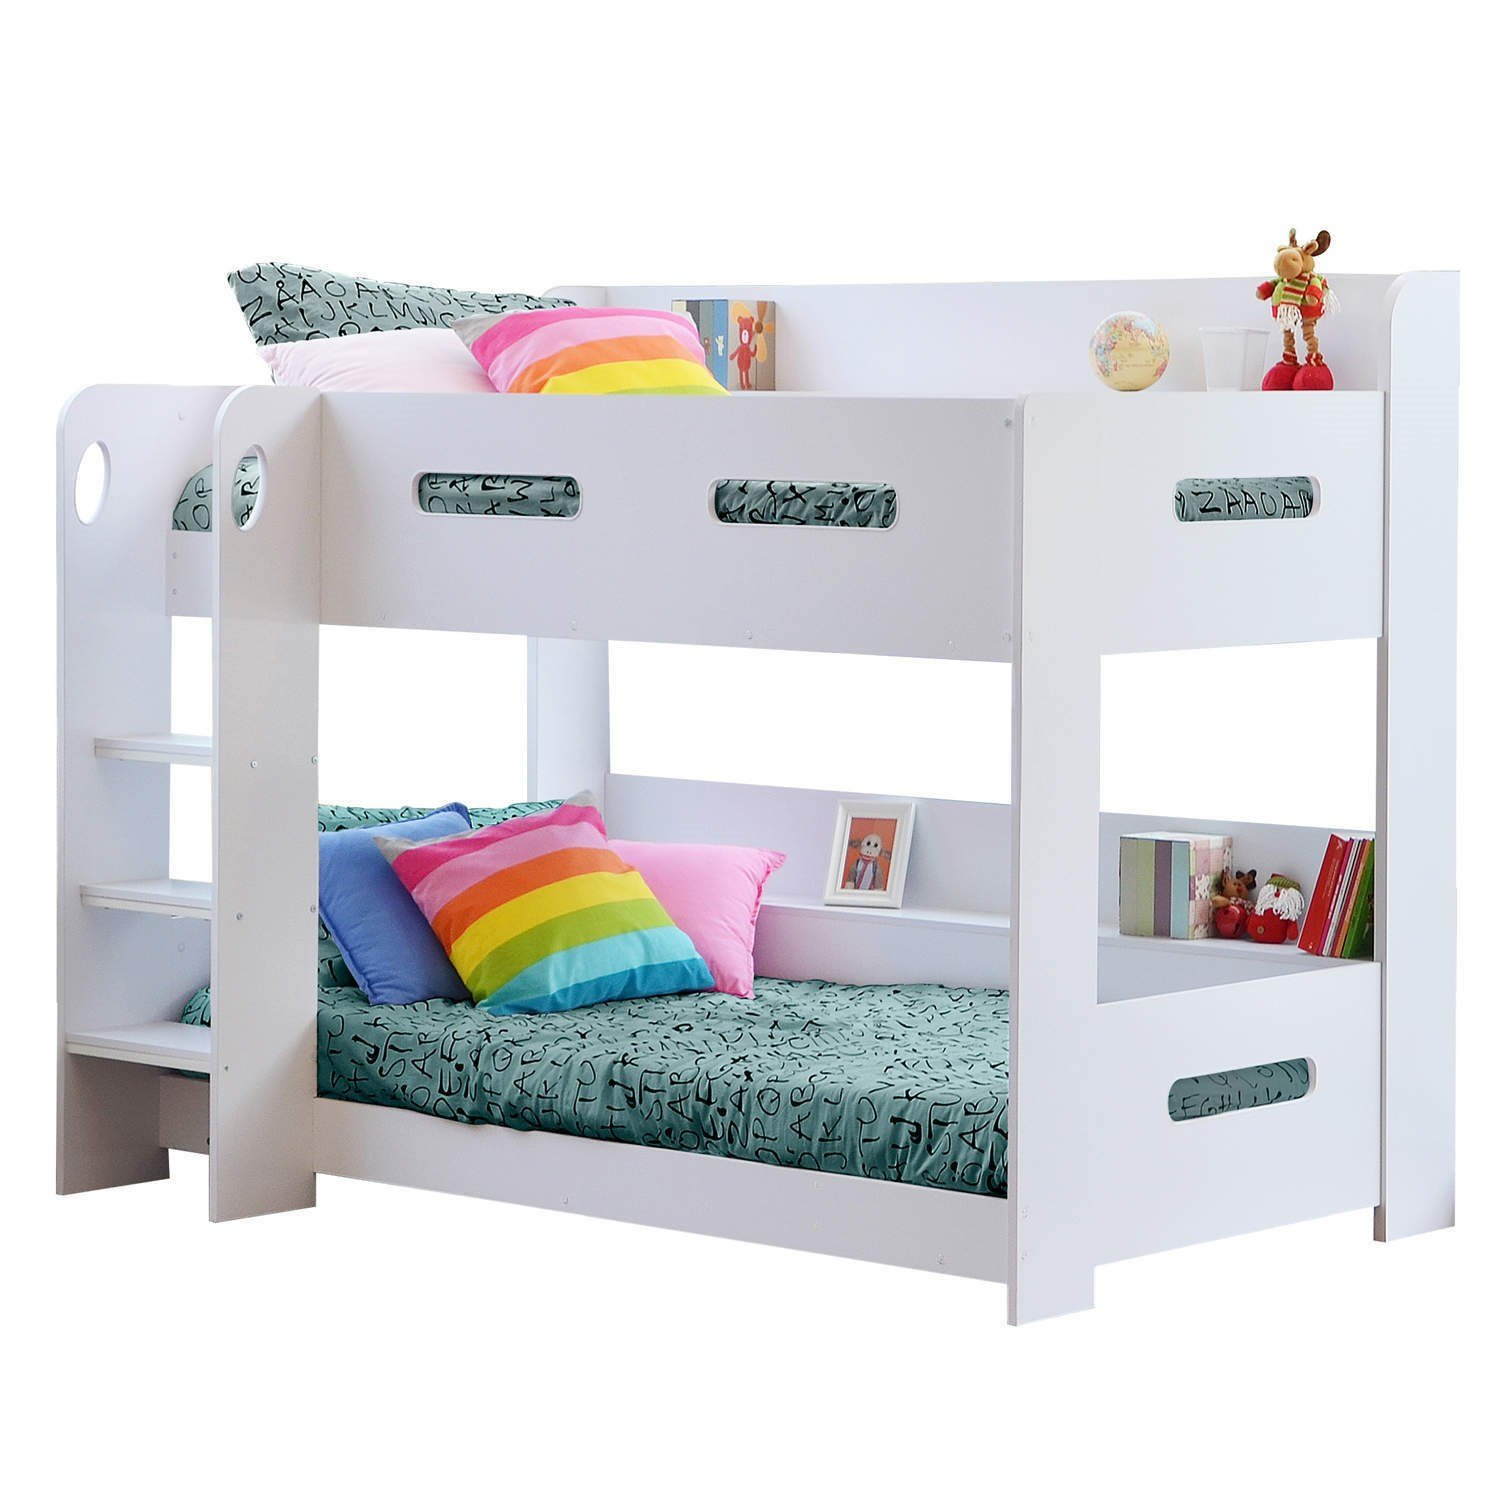 Sky Furniture White Kids Bunk Bed   Ladder Can Be Fitted Either Side! +  Storage Shelves + FREE UK Delivery: Amazon.co.uk: Kitchen U0026 Home